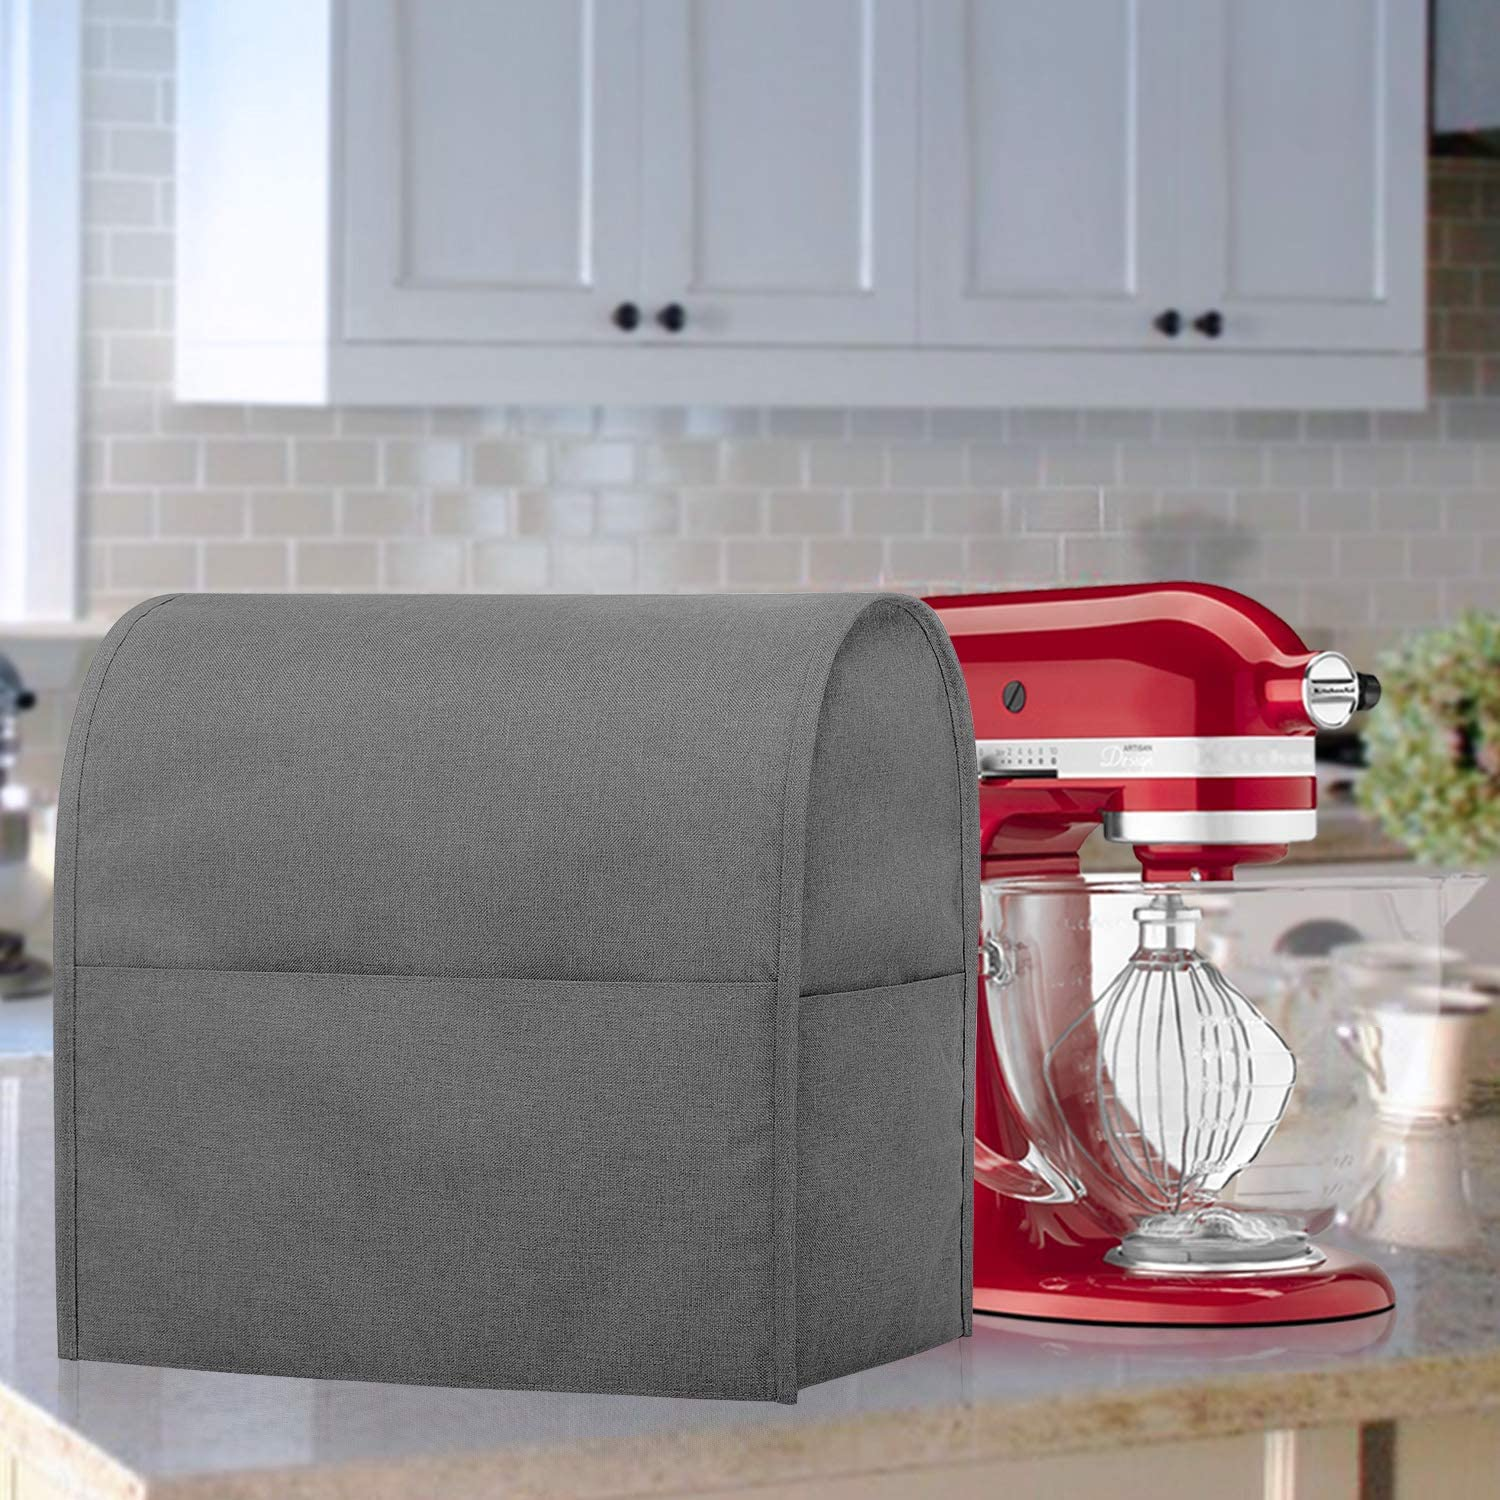 Cloth Cover with Pockets for KitchenAid Mixers and Extra Accessories Gray Small Luxja Dust Cover Compatible with 4.5-Quart and 5-Quart KitchenAid Mixers